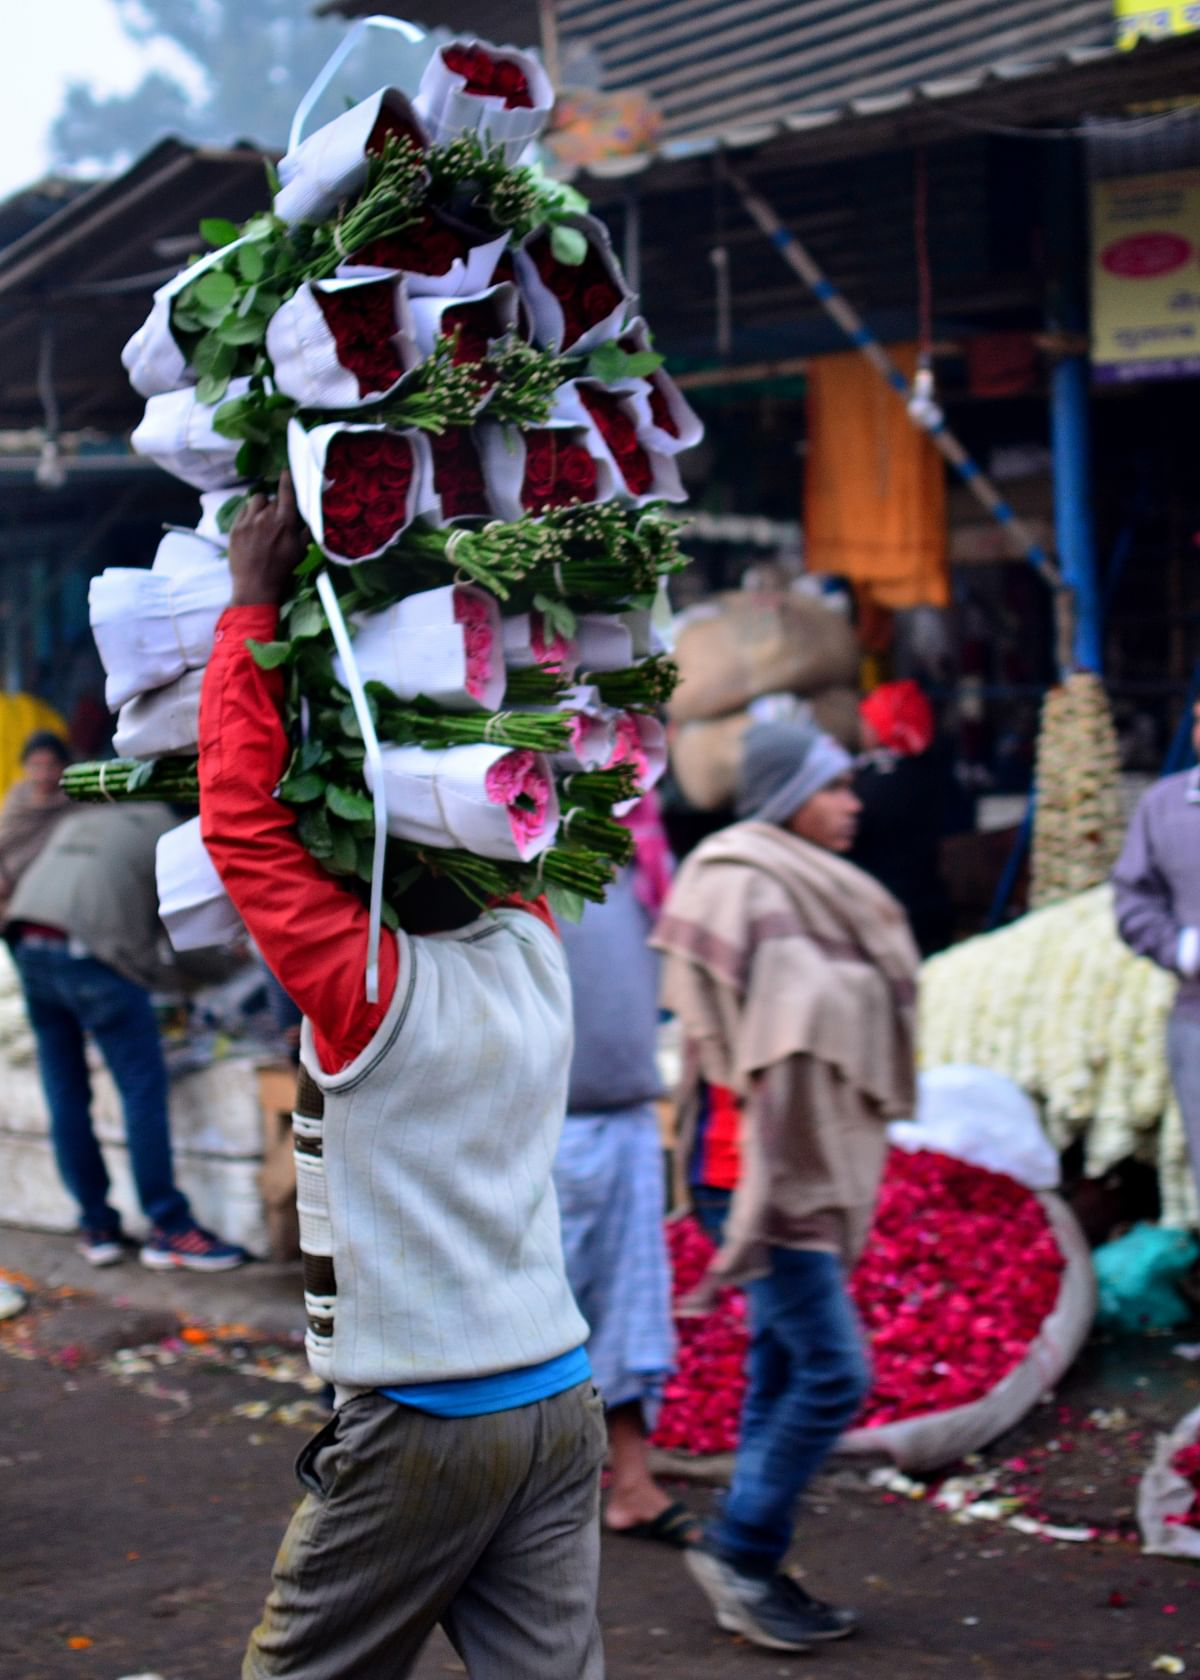 These shopkeepers do not buy more than 8-10 bundles per day. (Photo: Prashant Chahal/<b>The Quint</b>)